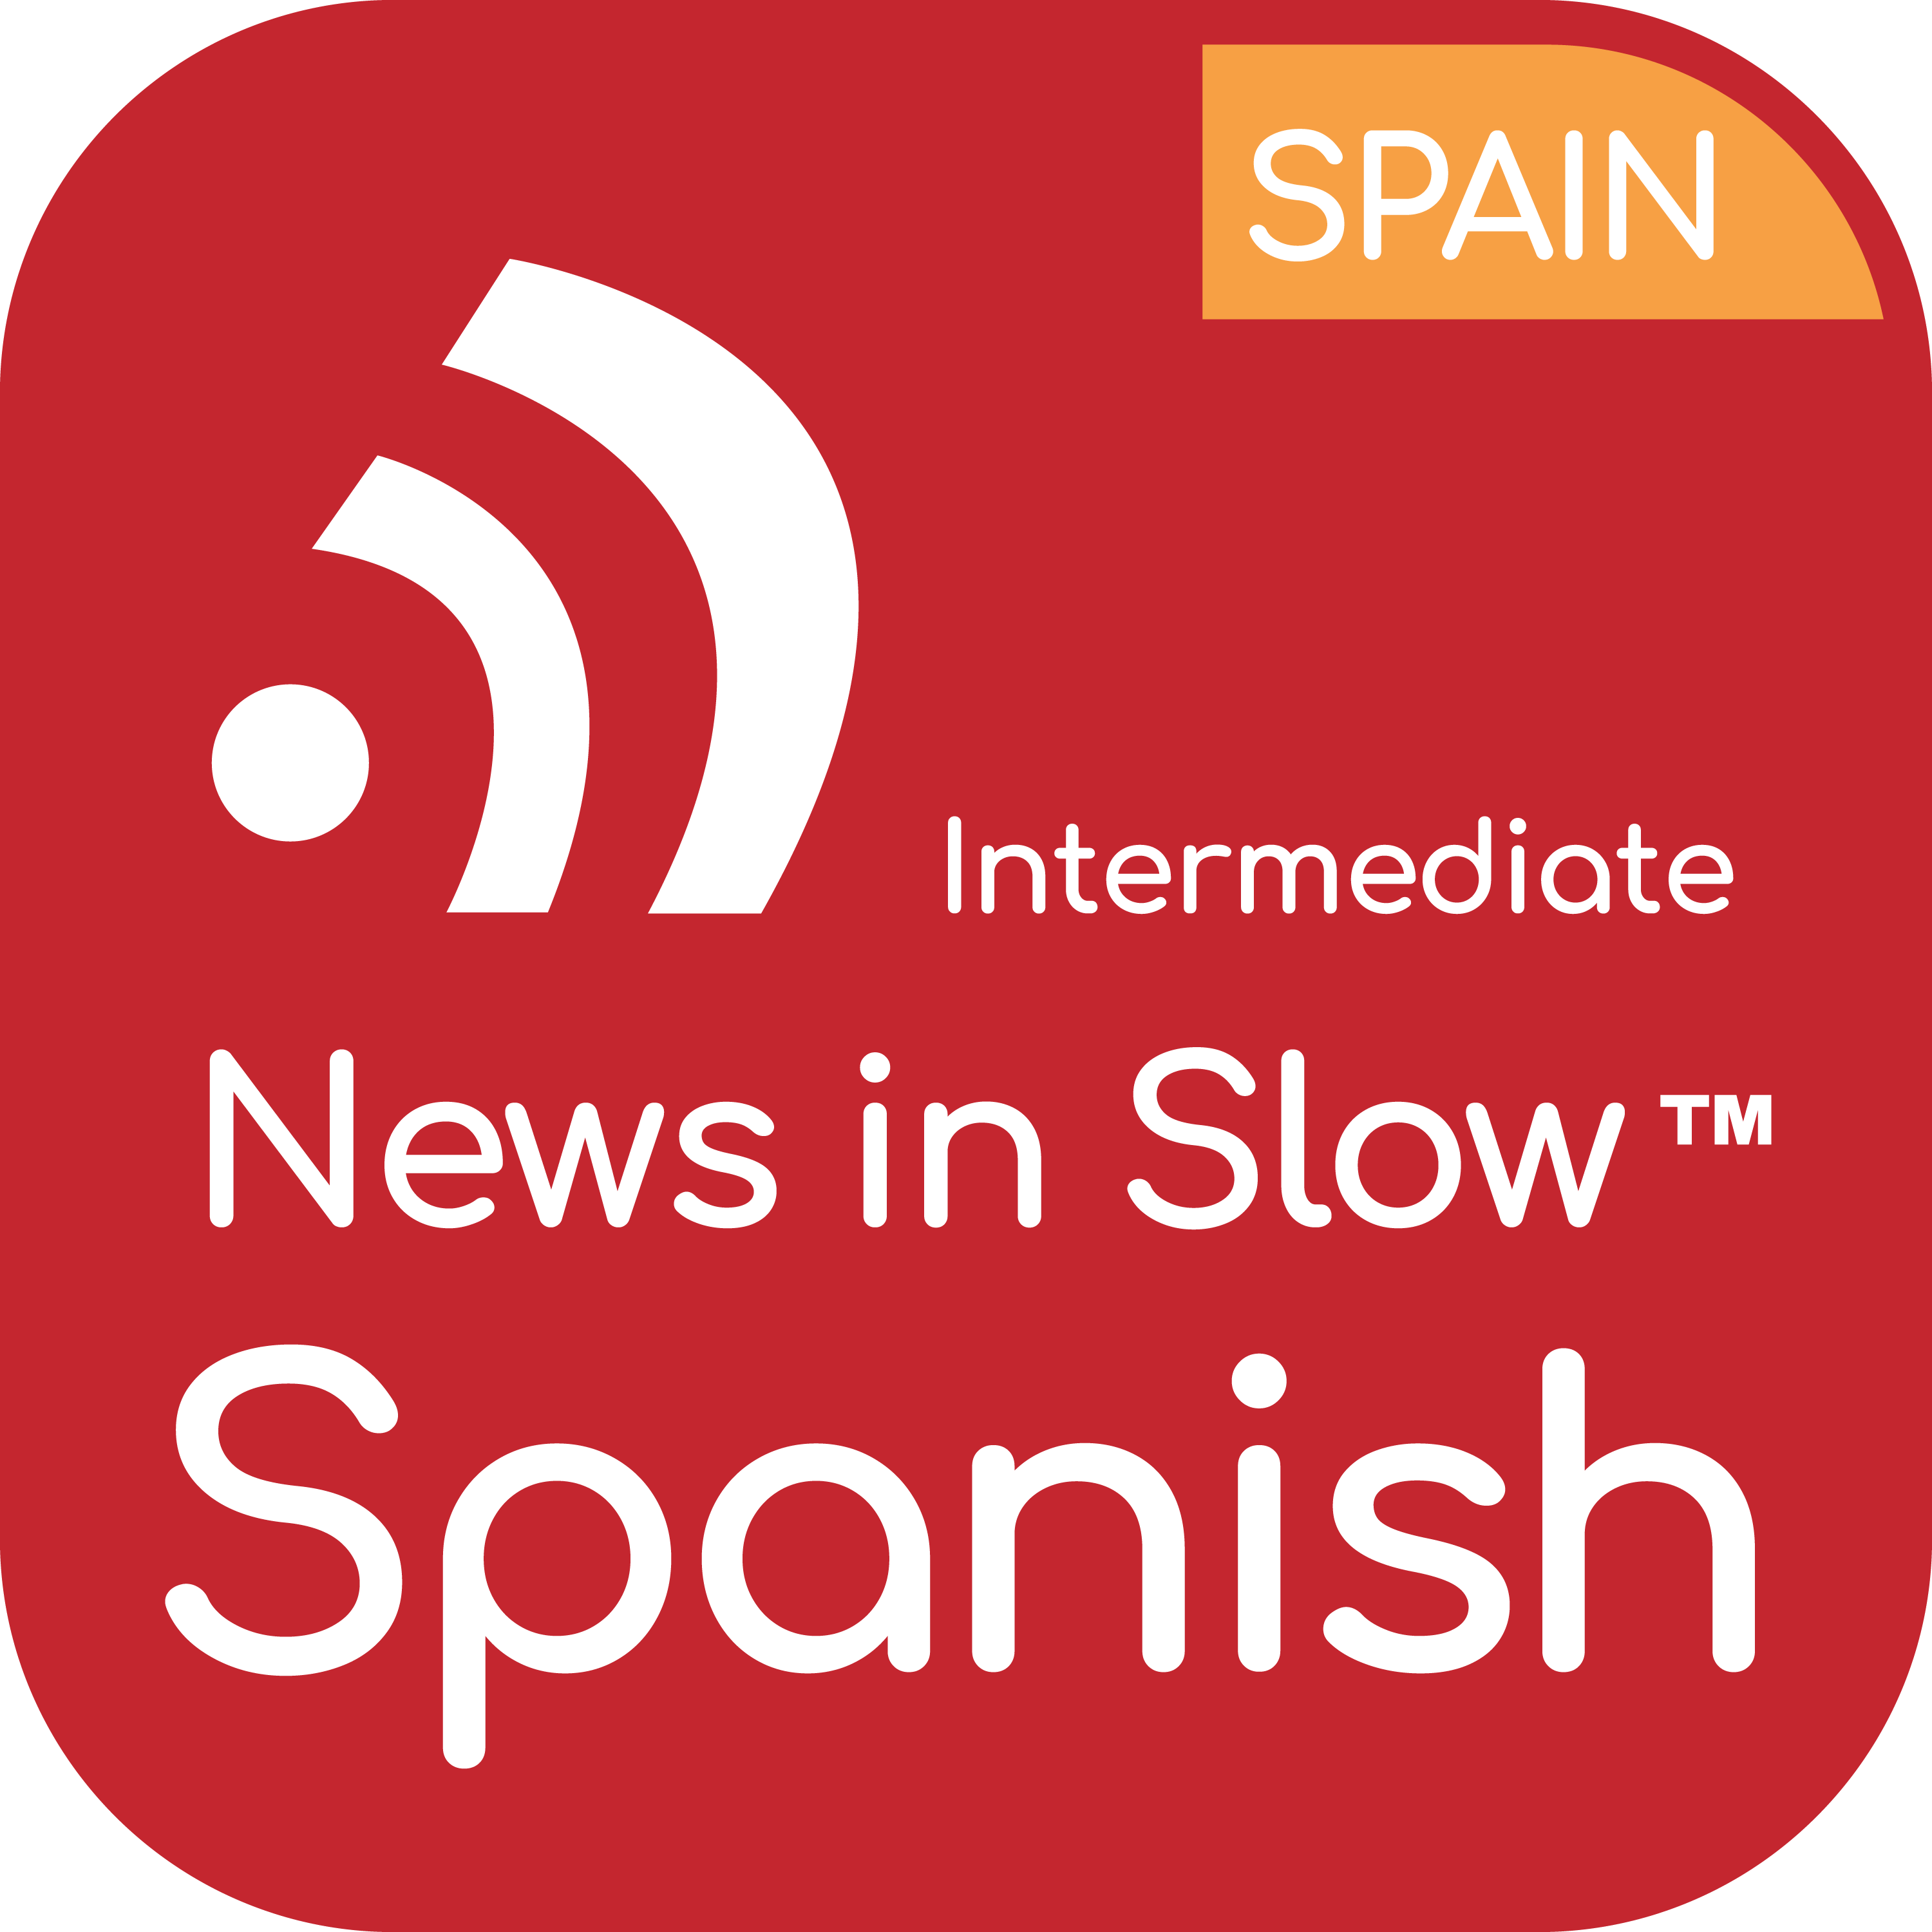 News in Slow Spanish - #634 - Study Spanish While Listening to the News